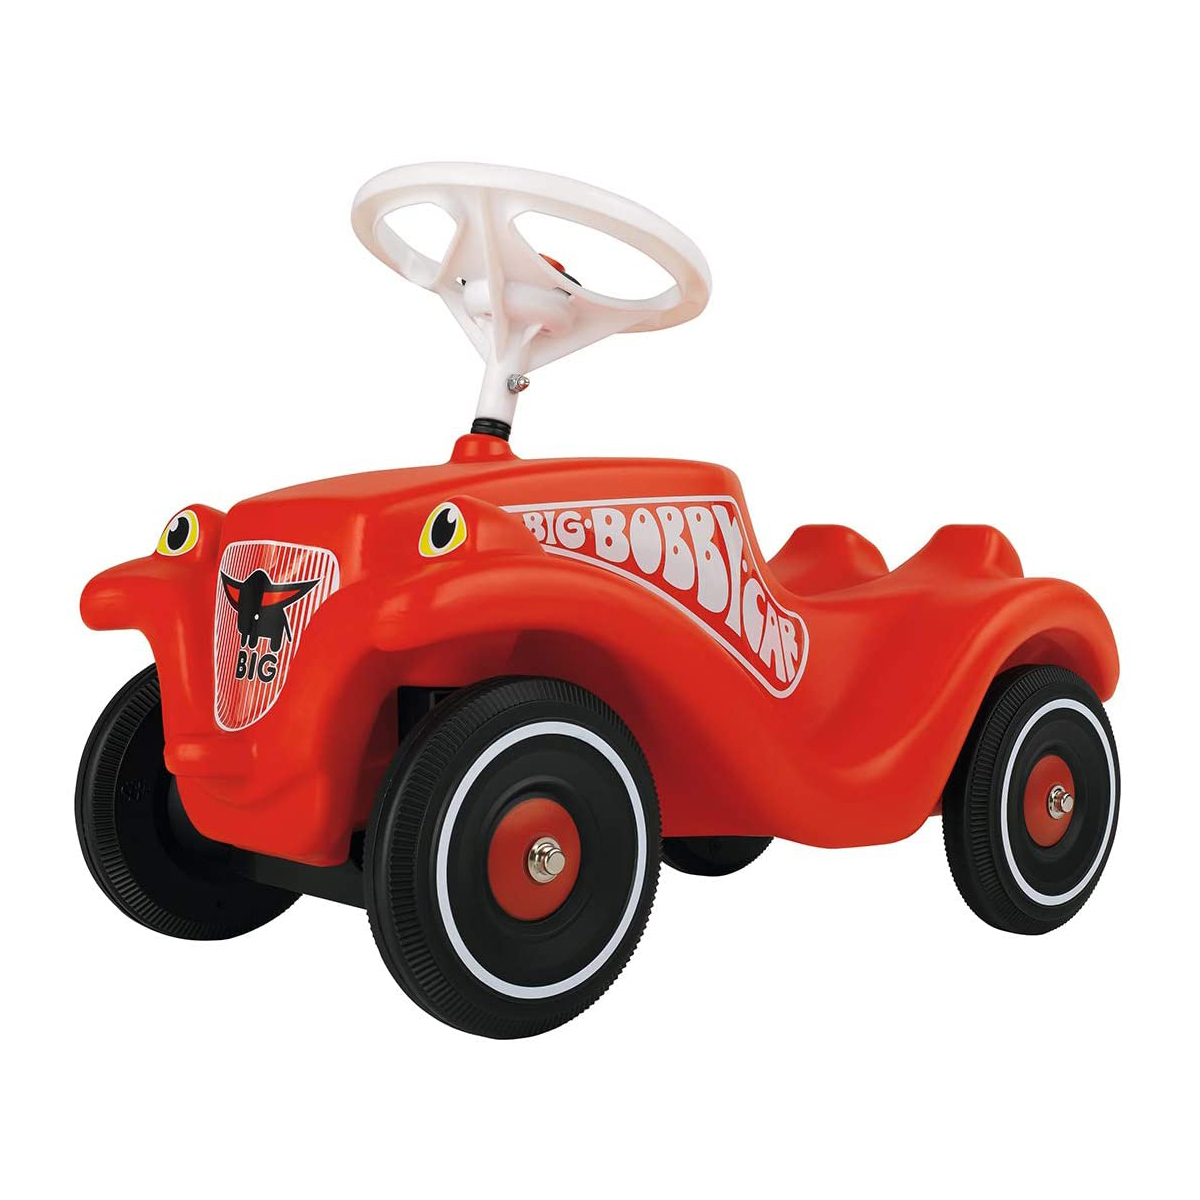 BIG Bobby Car Classic Ride-On Vehicle at Toys R Us